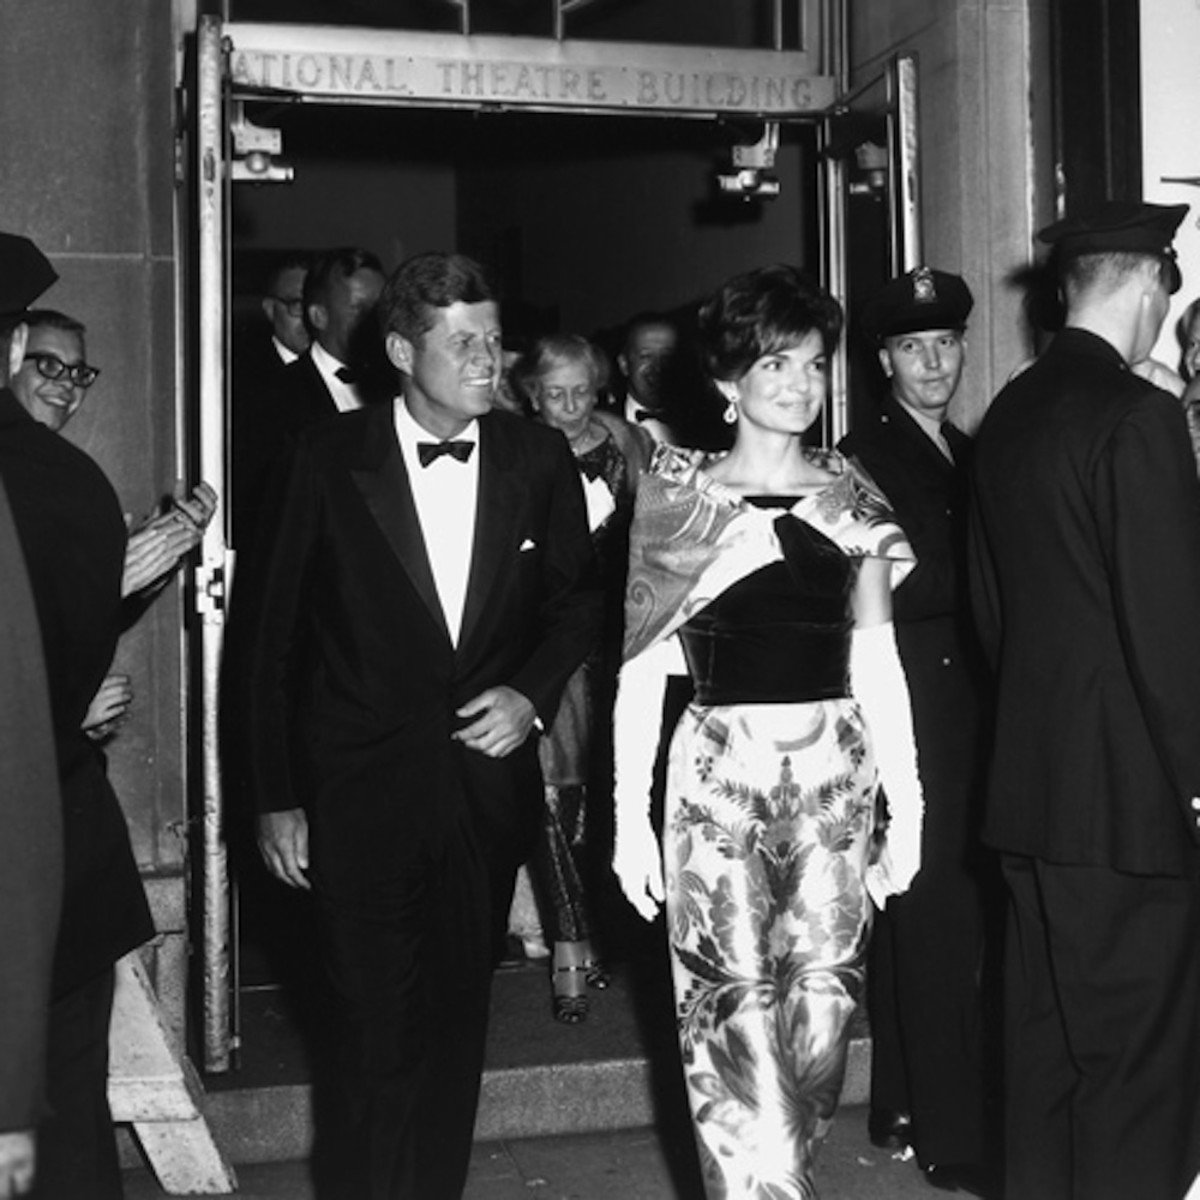 President John and Mrs Kennedy at the National Theatre, Washington DC